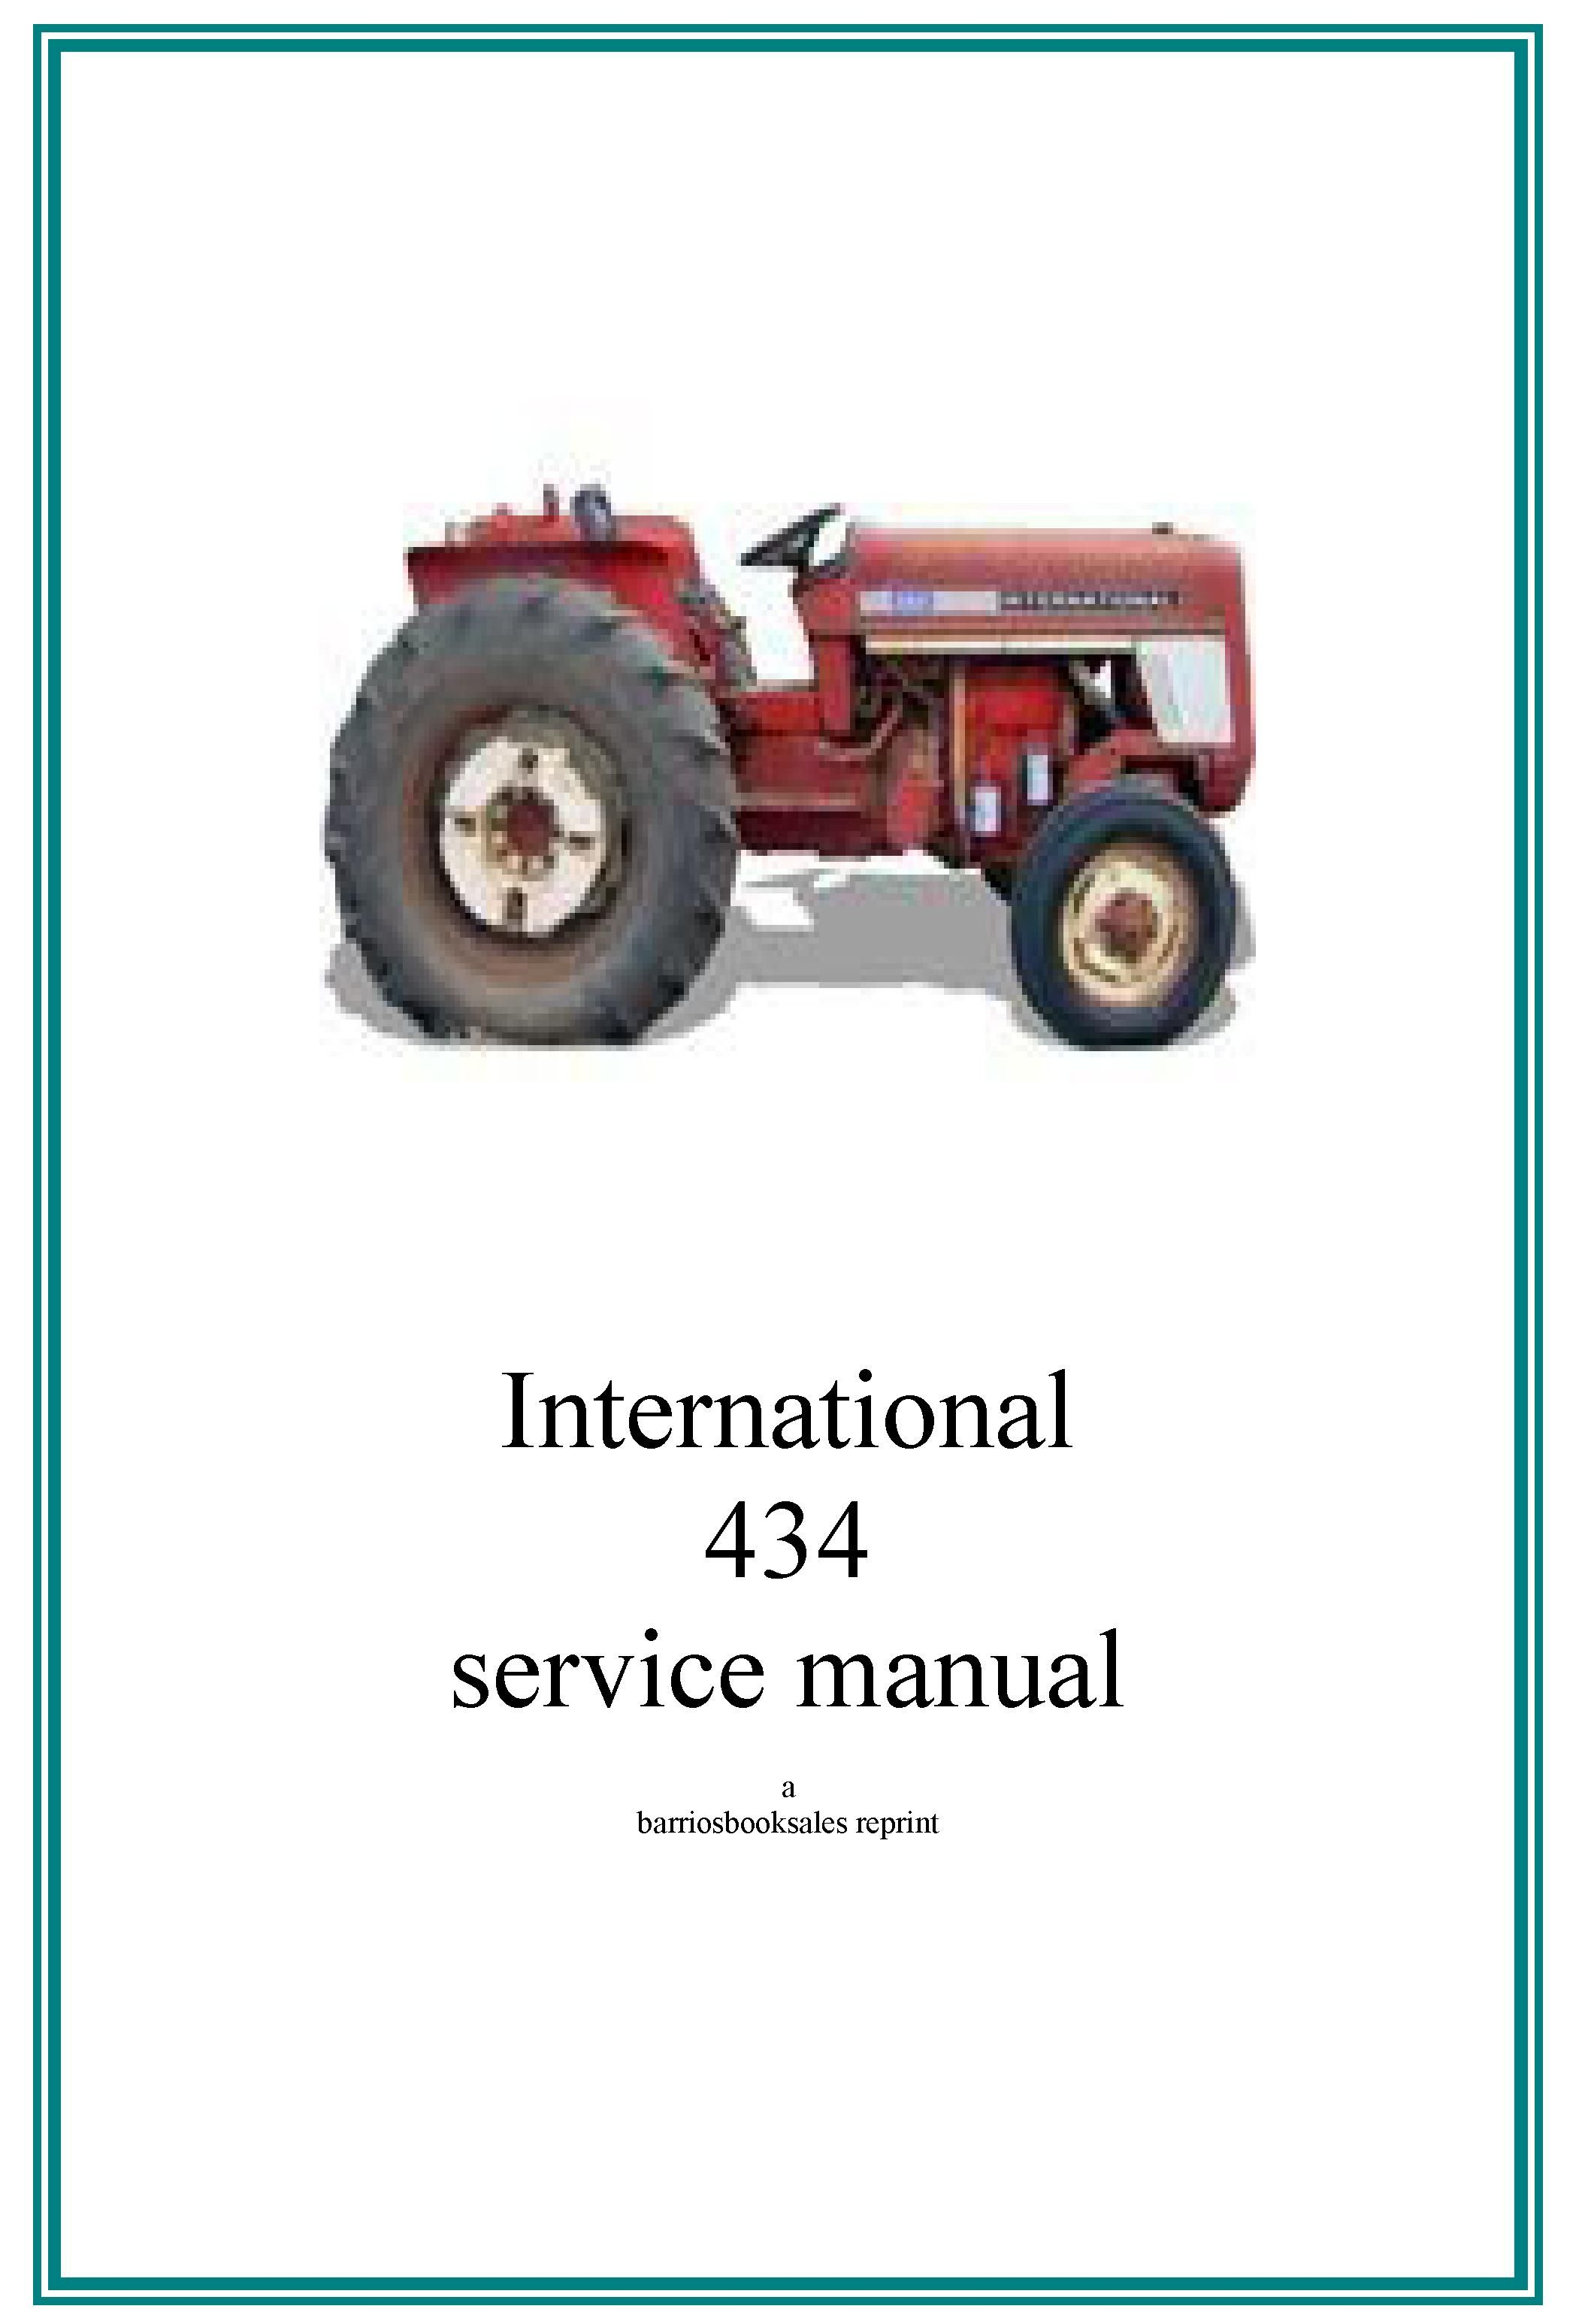 Pin by Tractor manuals downunder on Manuals for IHC-Farmall-McCormick to  download   Pinterest   Manual, Tractors and International tractors